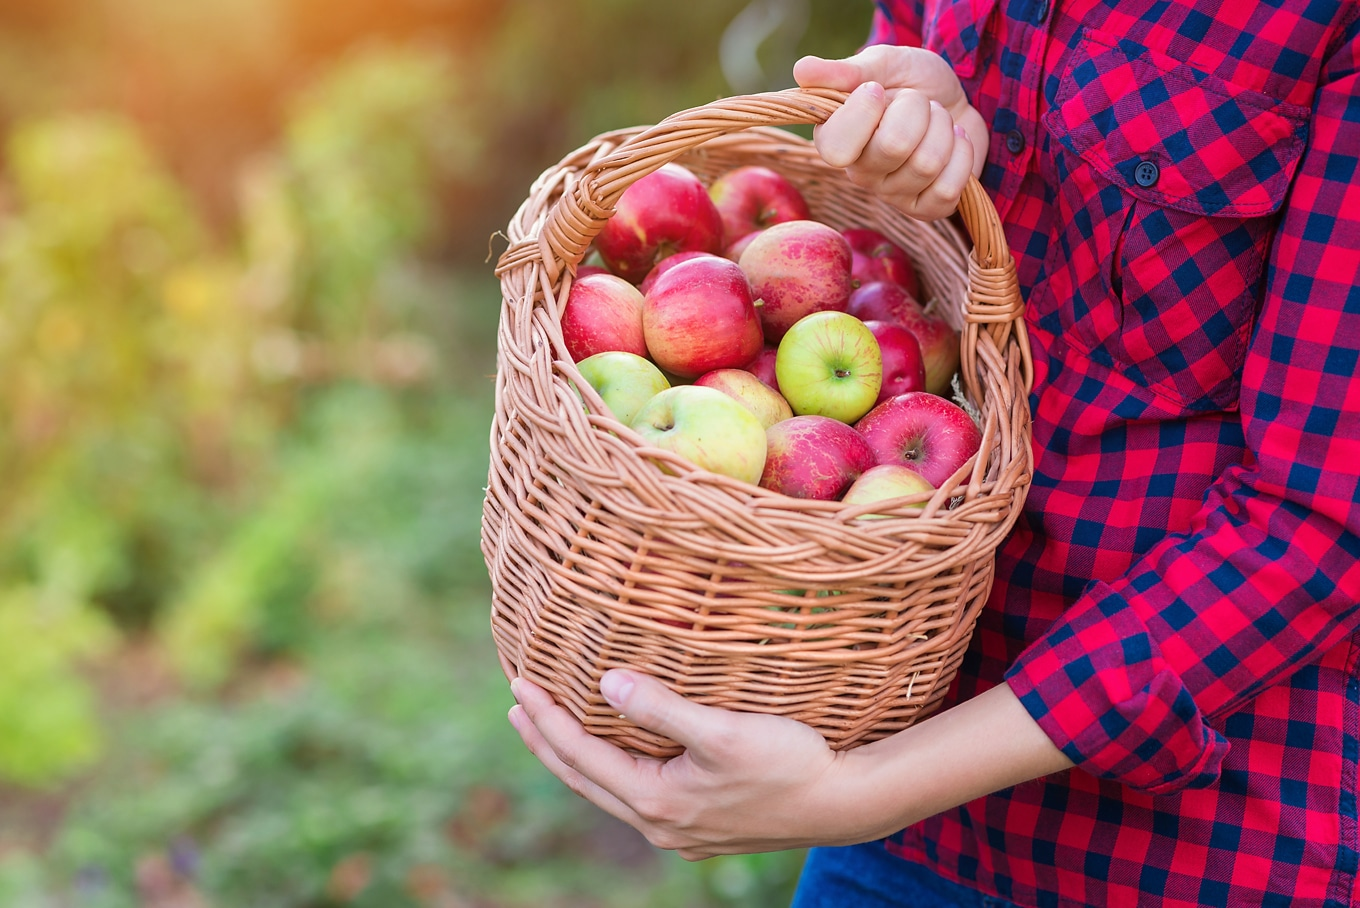 Woman Holding Basket of Apples for Fall Fun